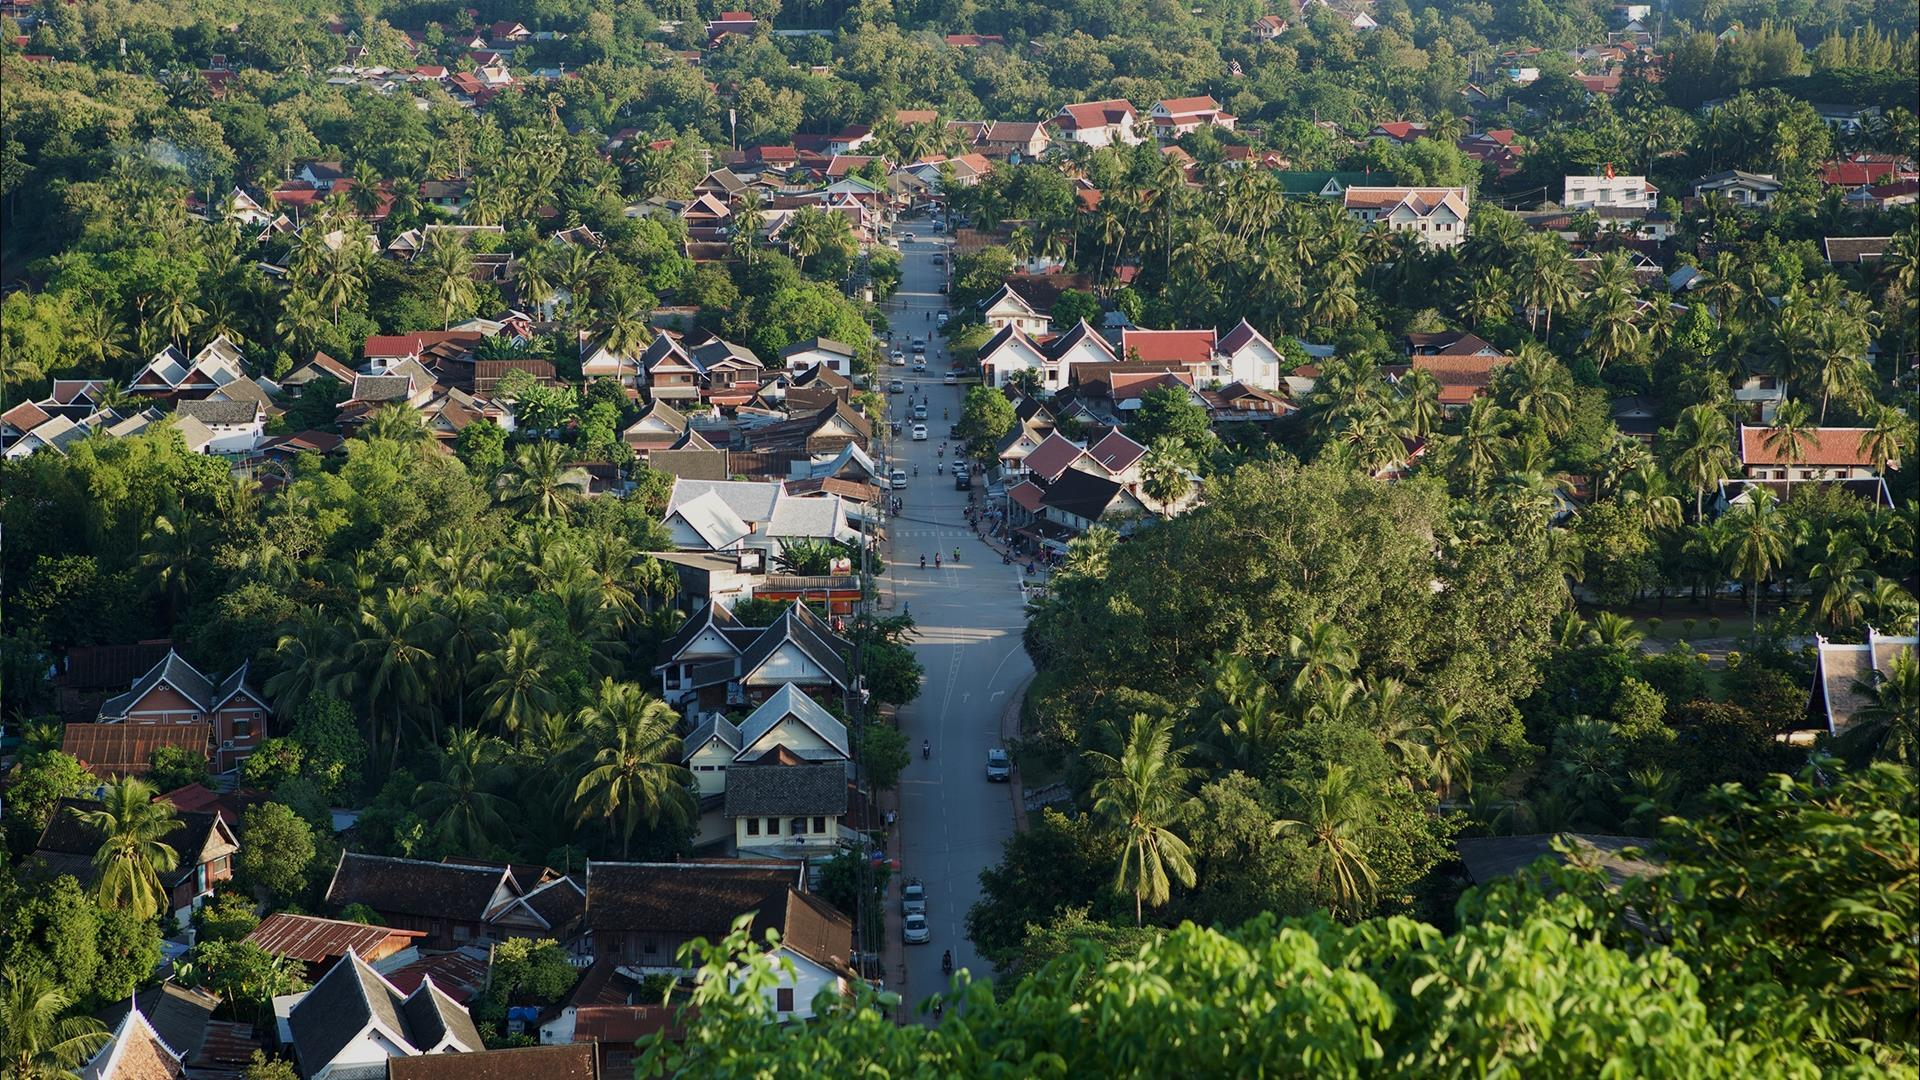 Laos, Luang Prabang : Luang Prabang World Heritage by Bike - 1 Day | Luang Prabang's Best on Two Wheels